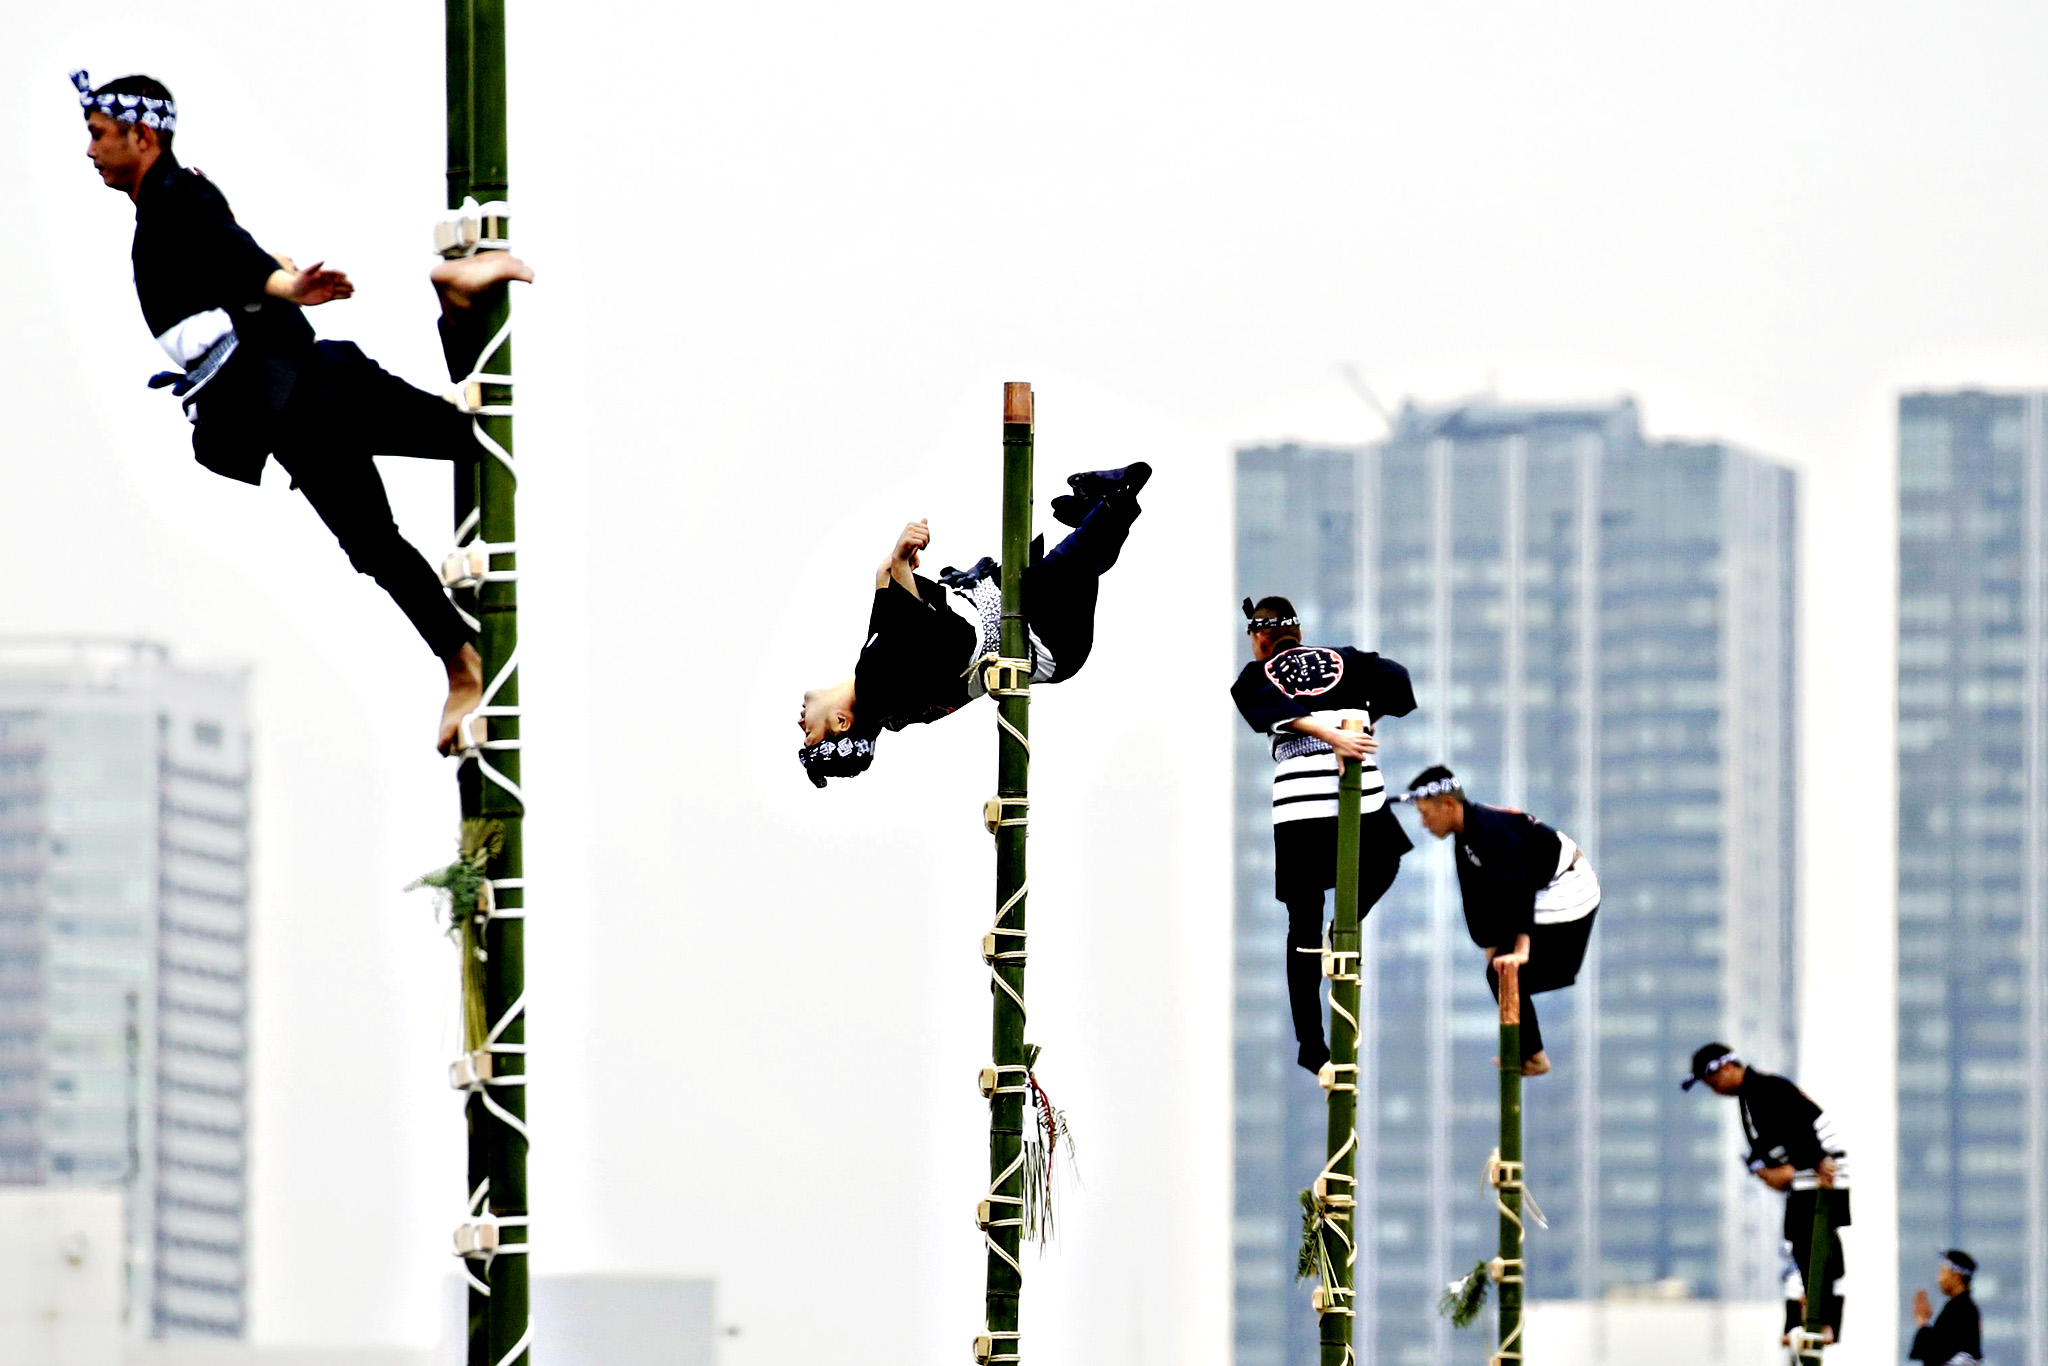 New Year's Fire Review in Japan...epa05089354 Members of the Edo Firemanship Preservation Association balance on top of bamboo ladders during a demonstration at the New Year's fire review held by the Tokyo Fire Department in Tokyo, Japan, 06 January 2016. Some 2,800 firefighters perform various emergency rescue and firefighting demonstrations in an effort to promote the prevention of fire and disaster in the annual event.